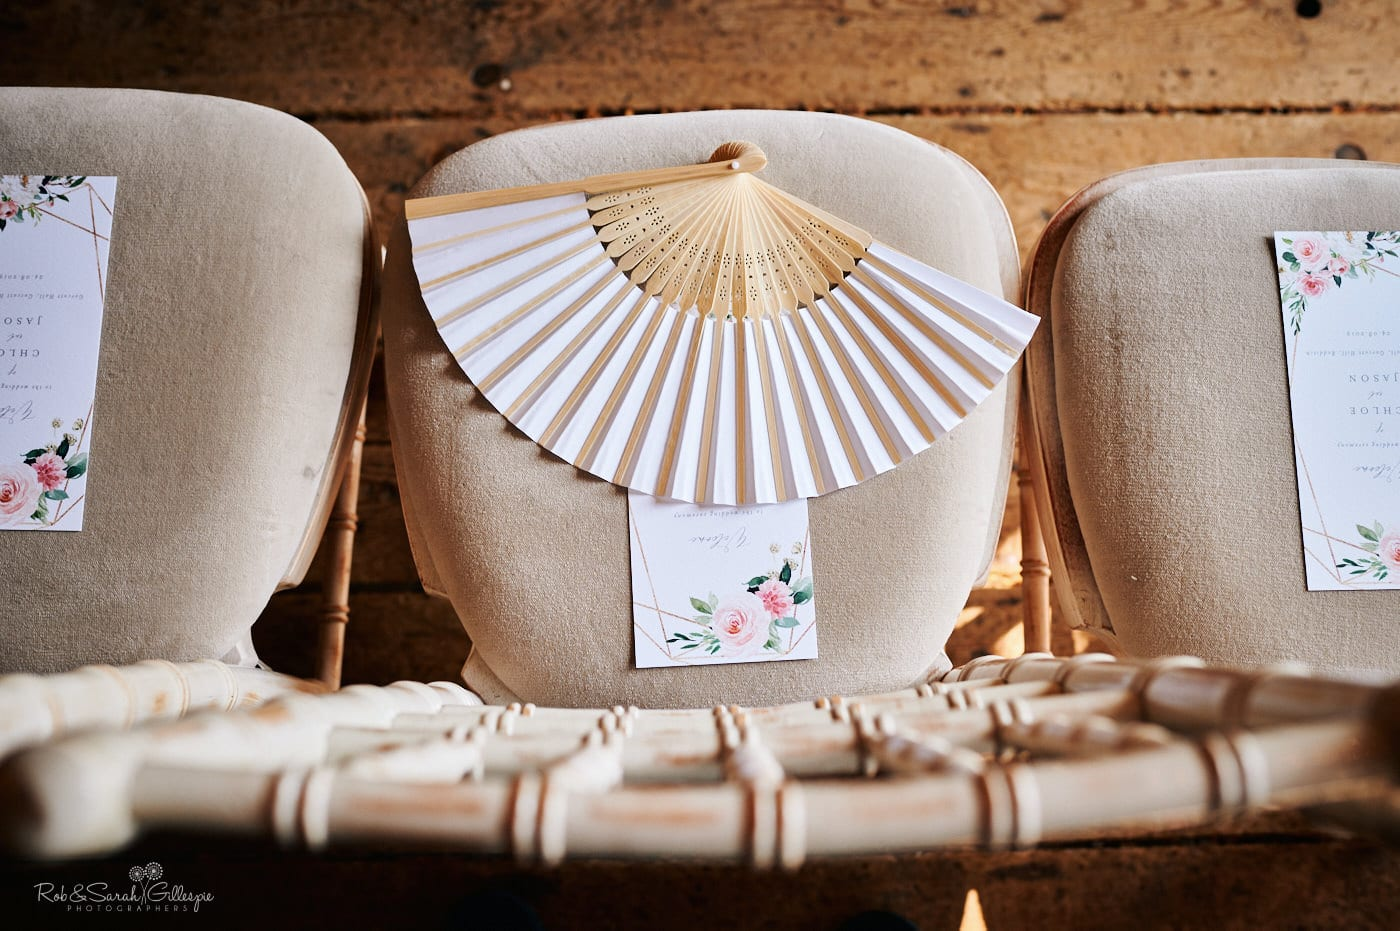 Paper fan on chair